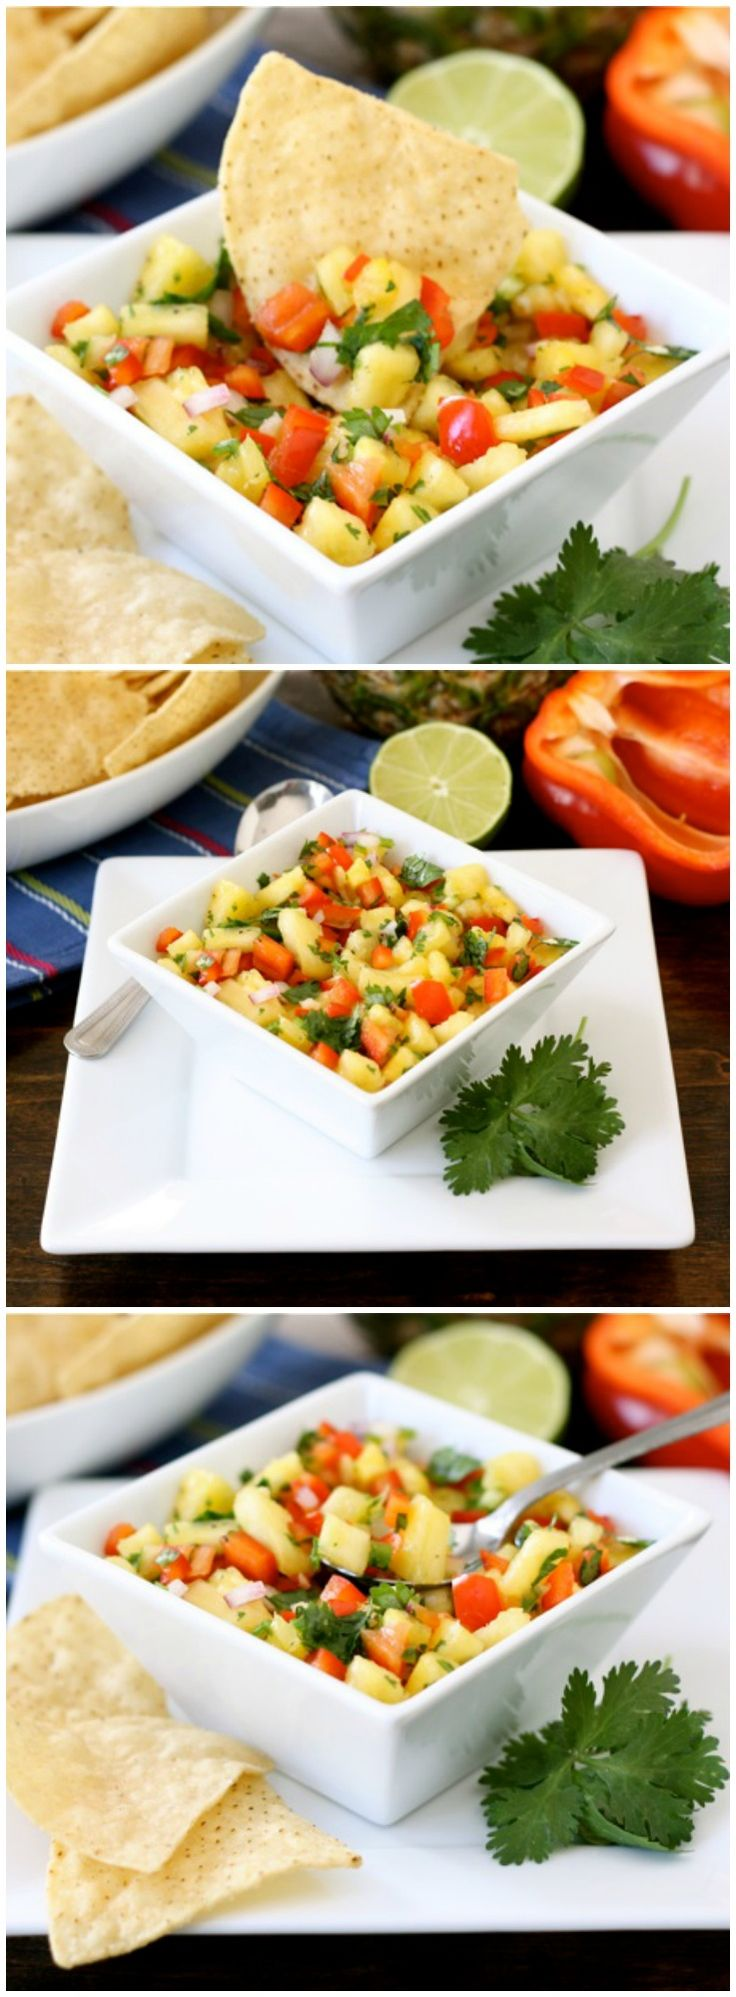 Pineapple Salsa Recipe on twopeasandtheirpod.com This salsa is so easy to make! Great with chips, fish, pork, or chicken!